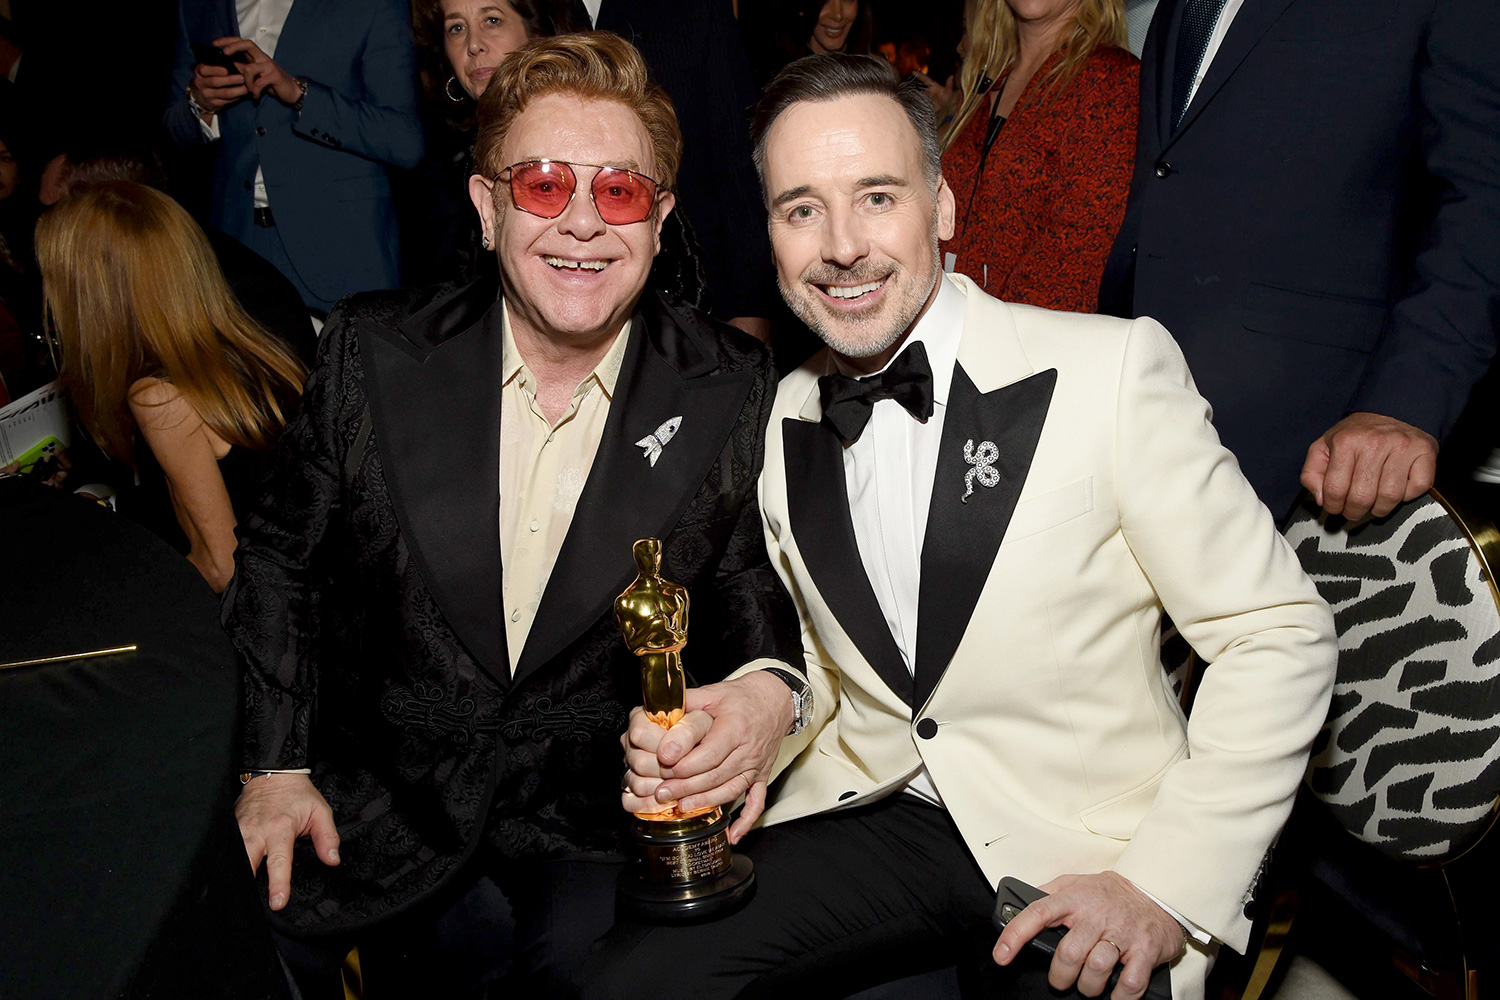 Elton John and David Furnish attend the 28th Annual Elton John AIDS Foundation Academy Awards Viewing Party sponsored by IMDb, Neuro Drinks and Walmart on February 09, 2020 in West Hollywood, California